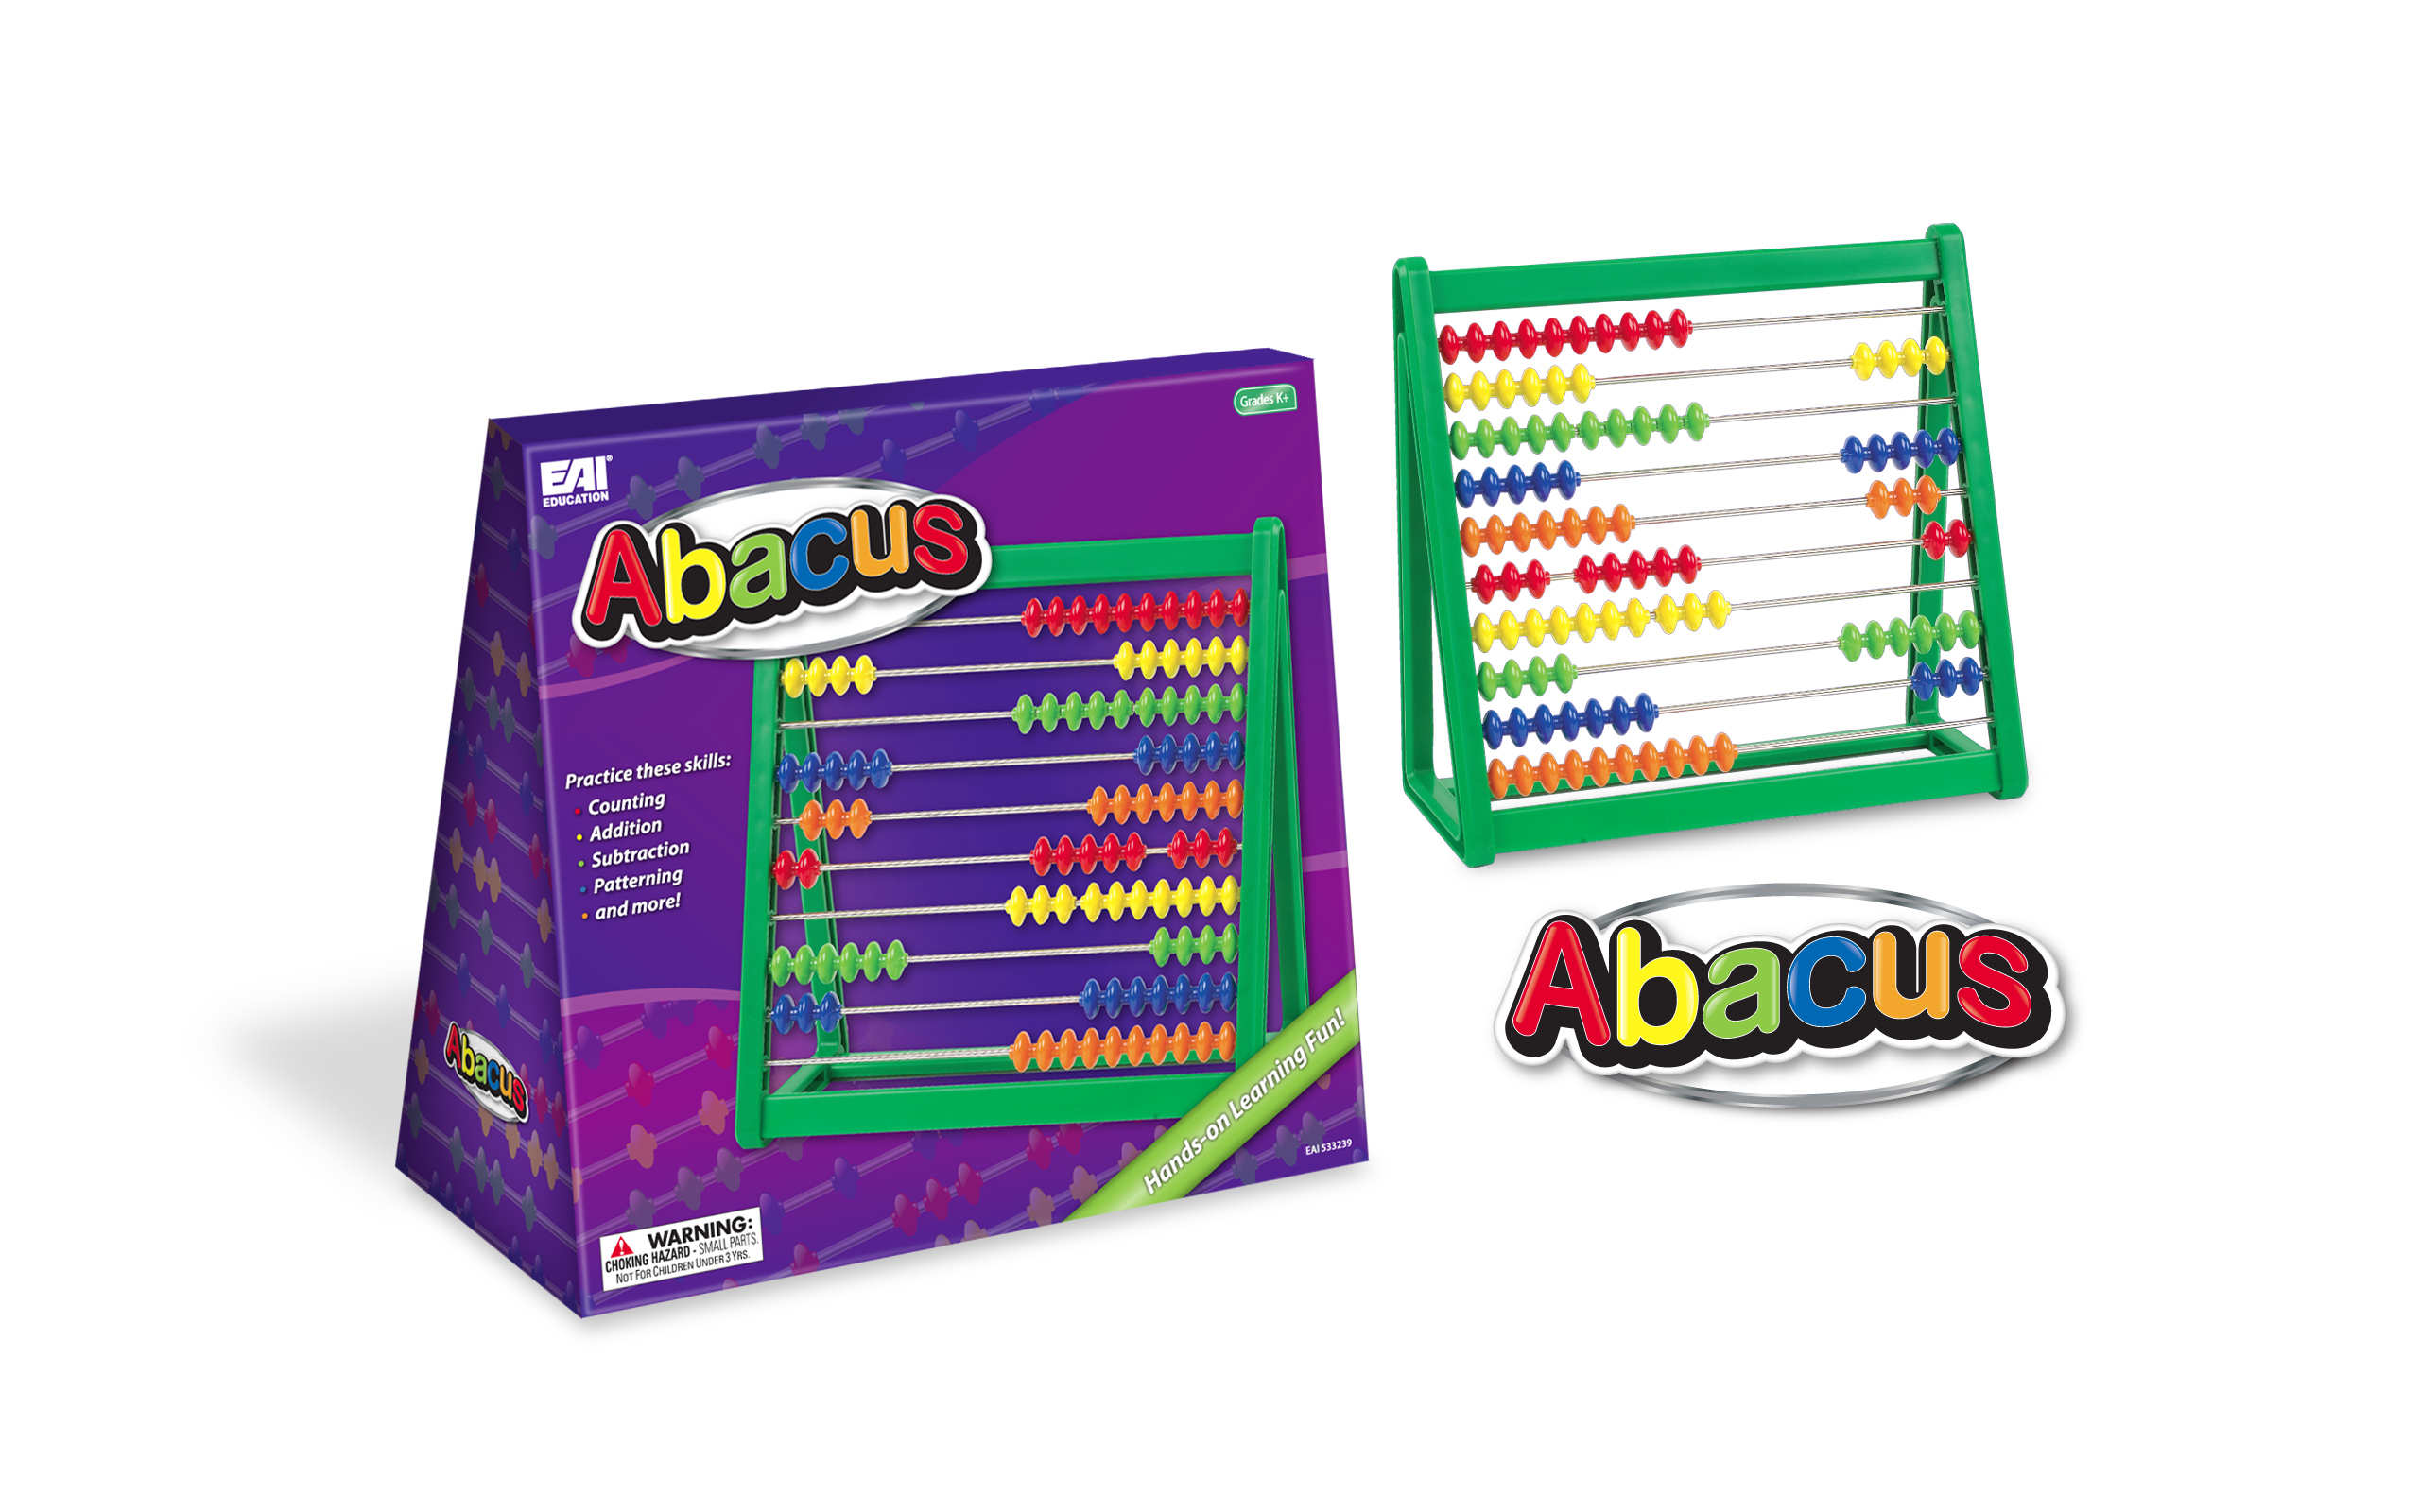 Abacus Logo & Box Design